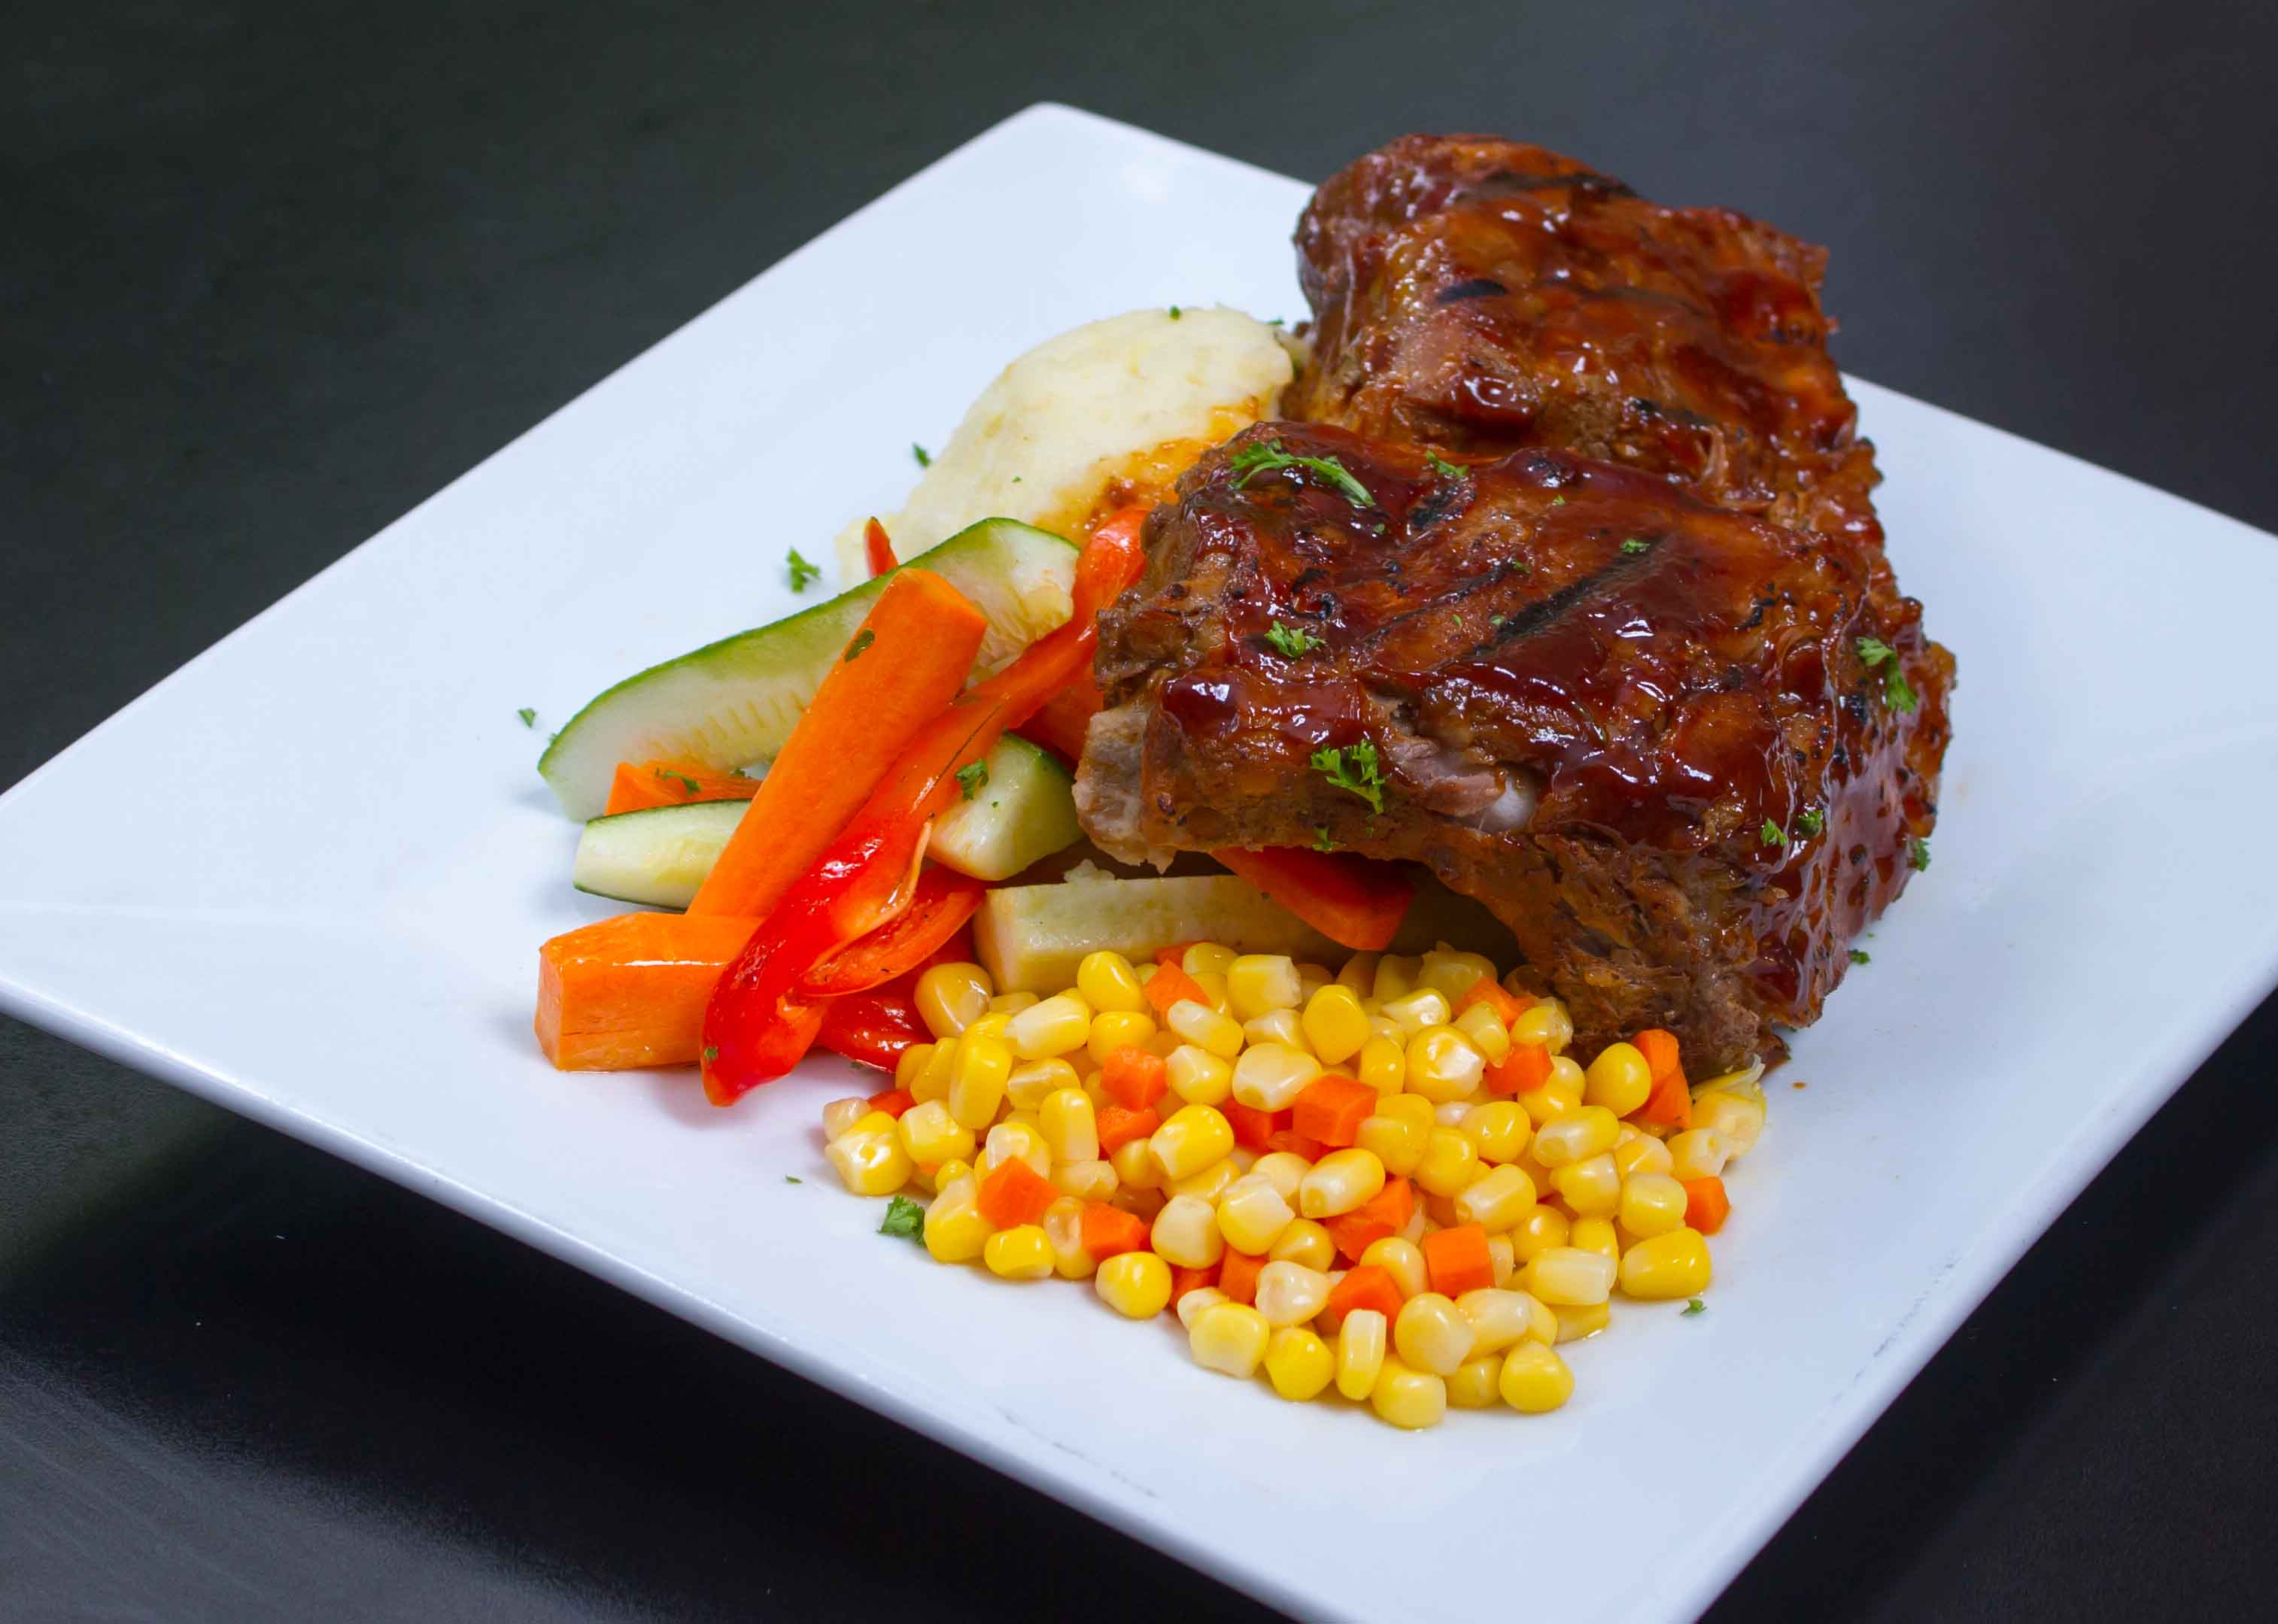 Ribs & Vegetables - Bowler Restaura